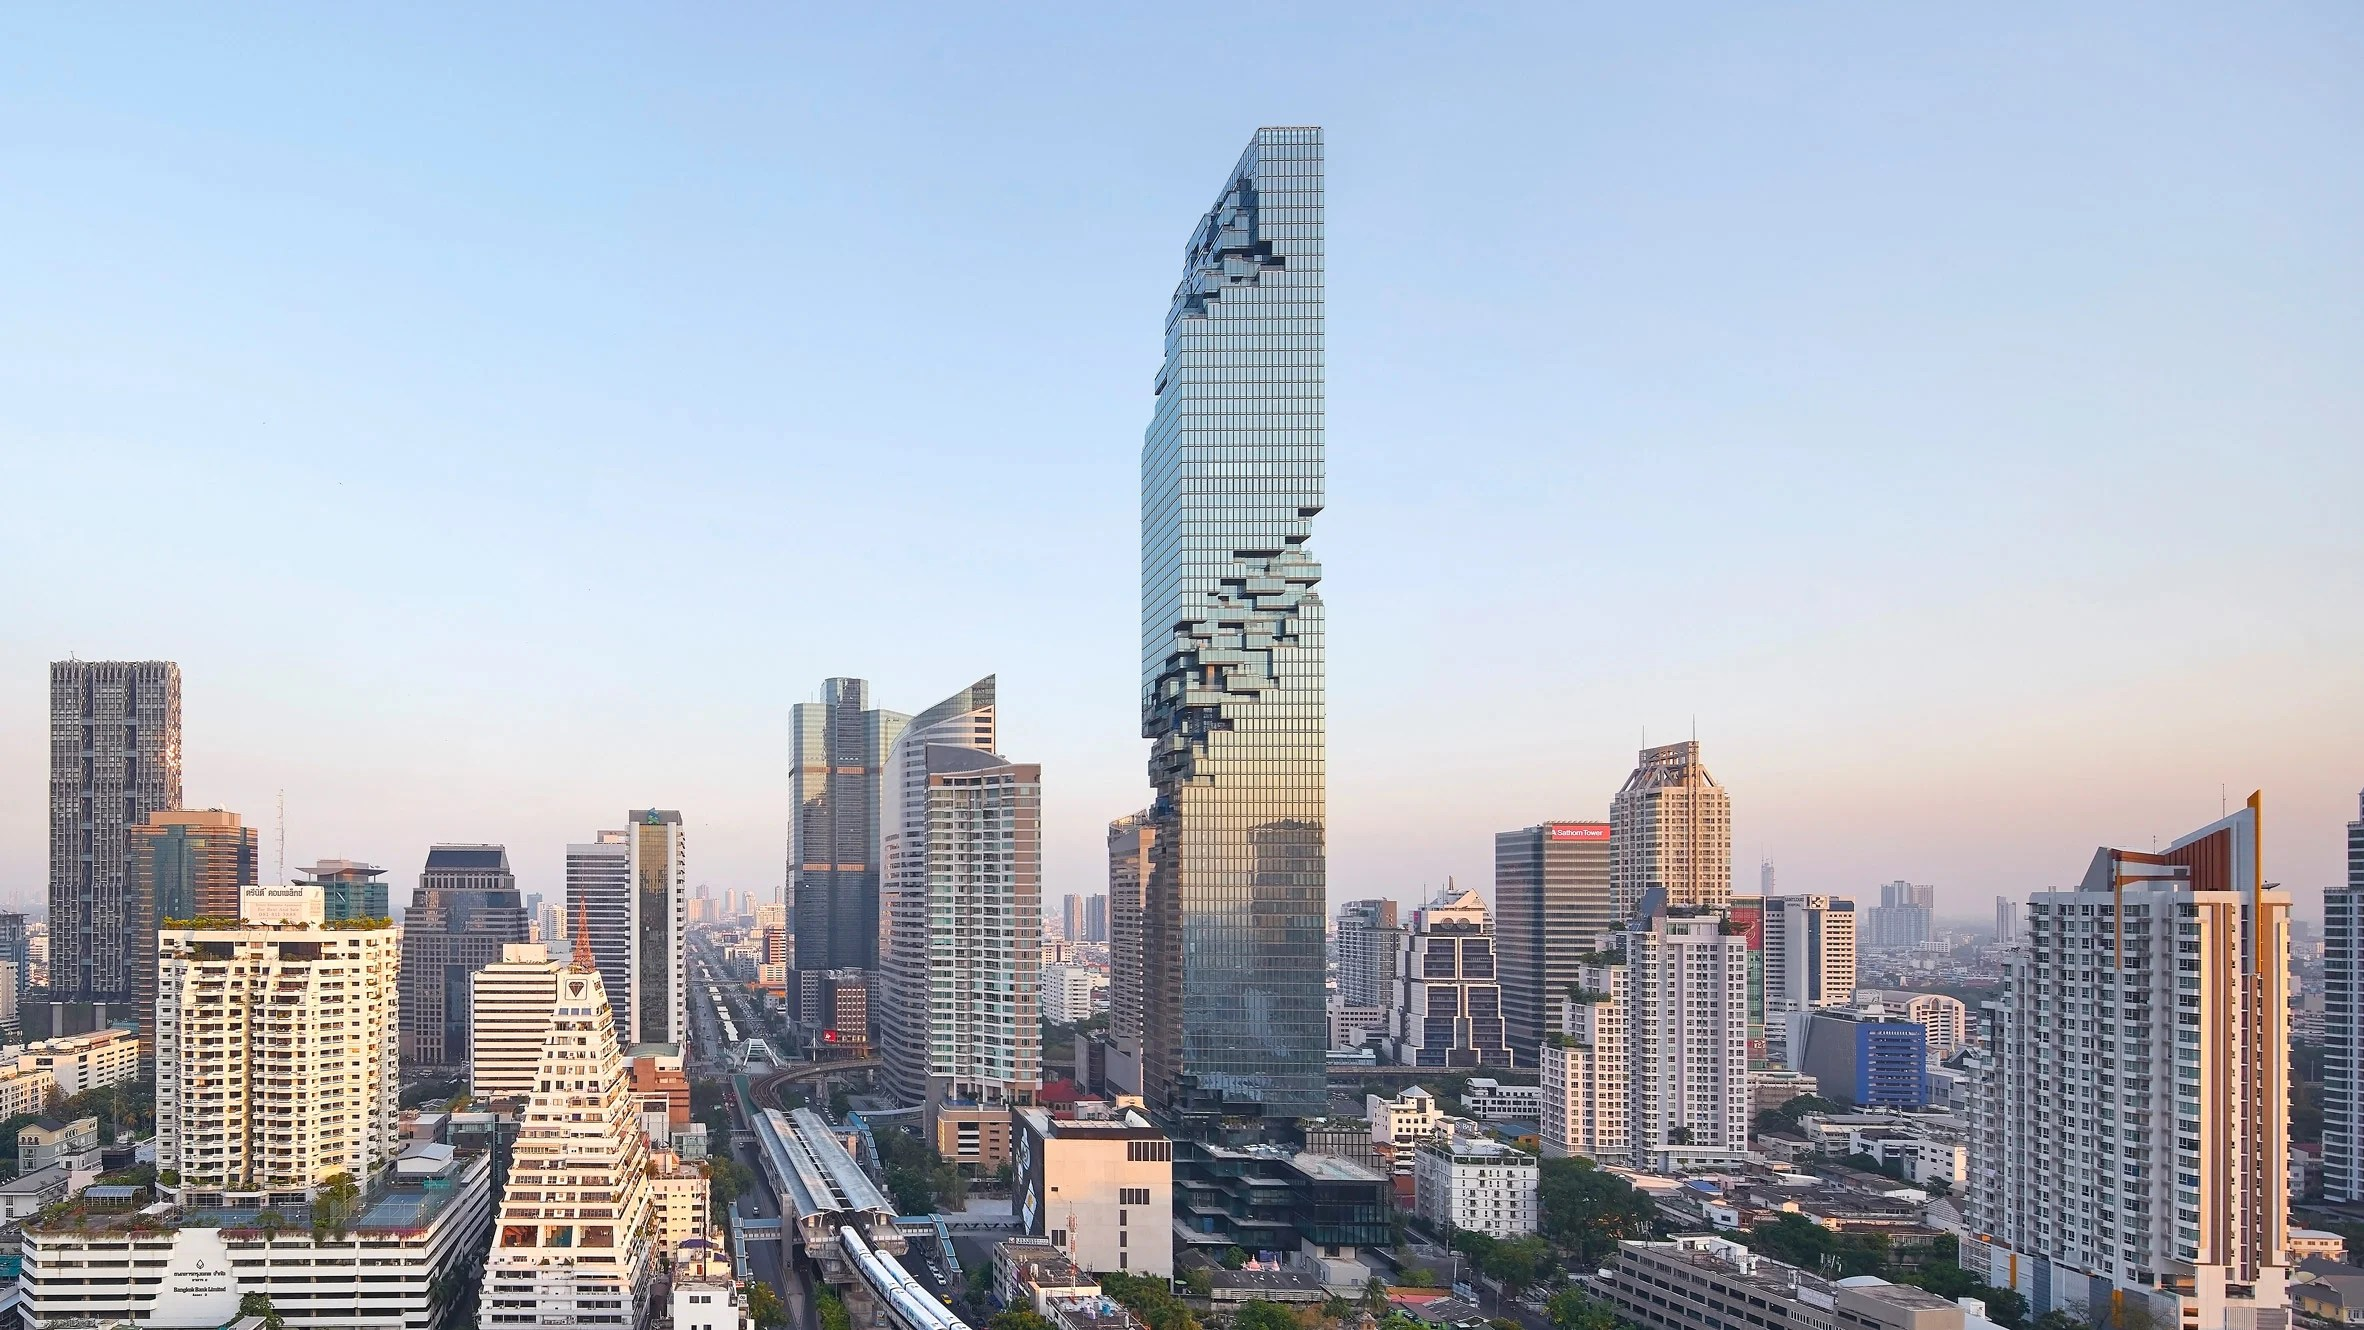 Büro Ole Scheeren Mahanakhon Tower Ole Scheerens Pixellated Mahanakhon Tower Photographed By